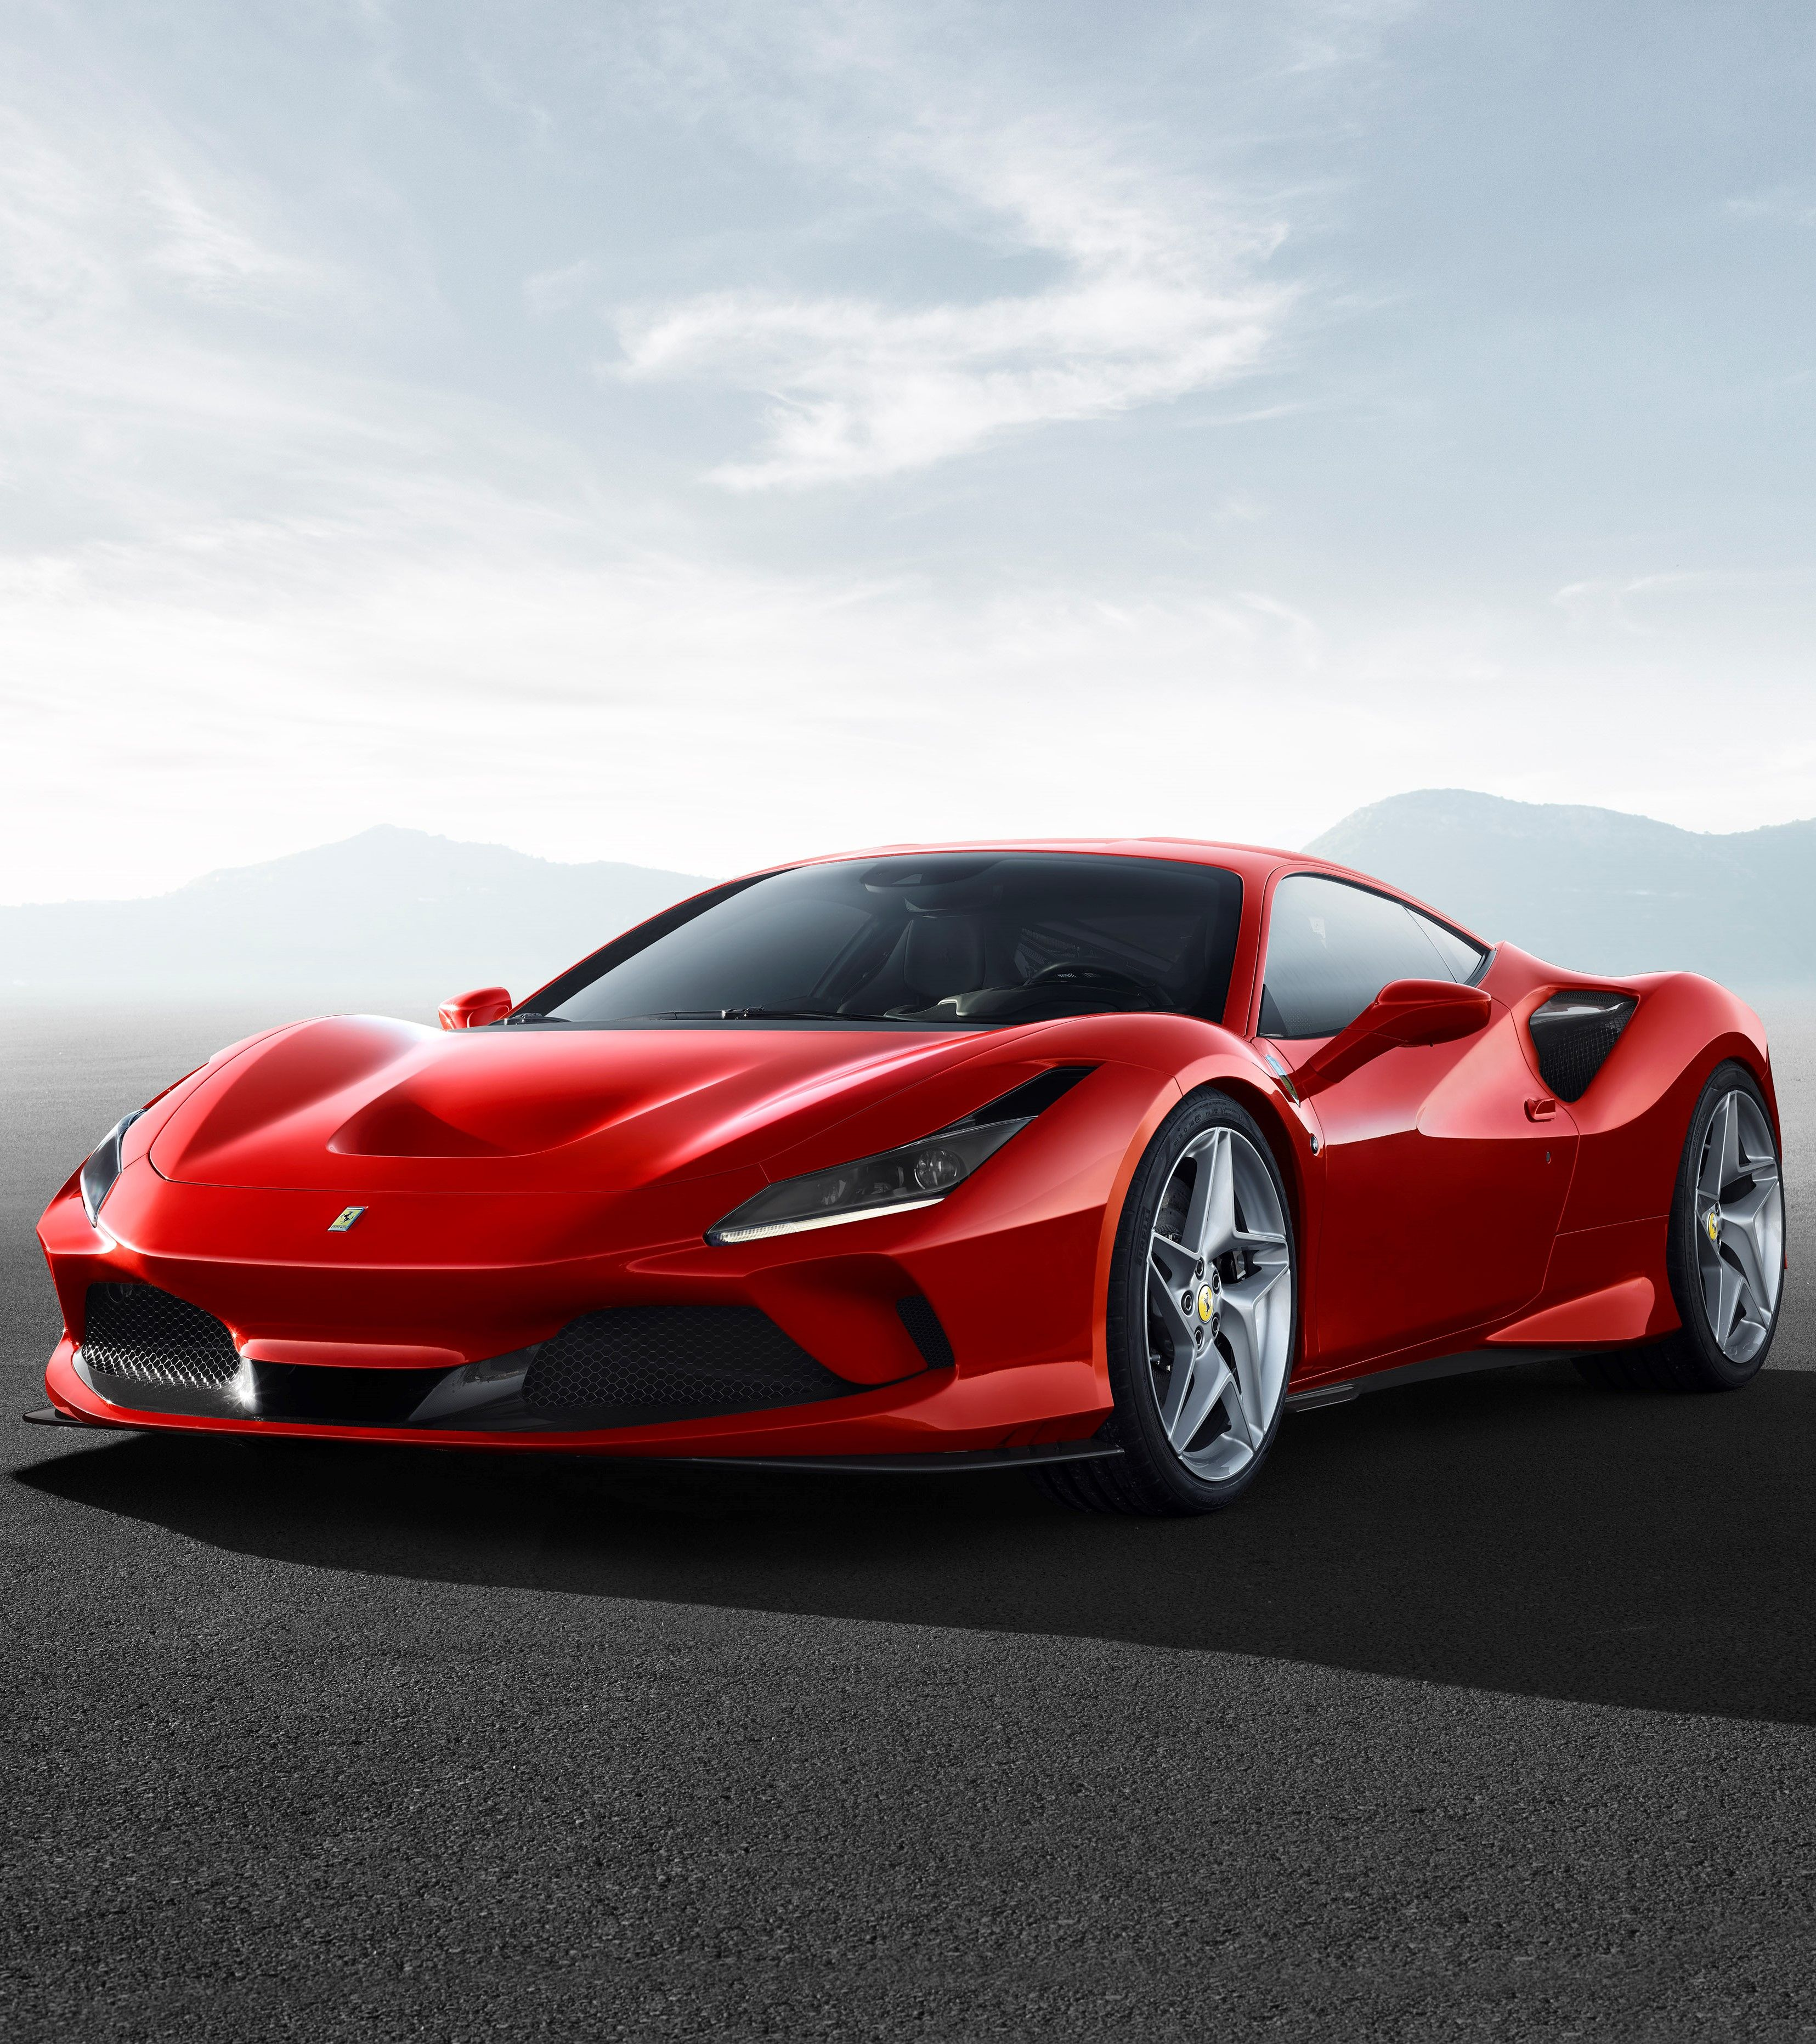 Ferrari F8 Tributo Successor To The 488 The Man With Images